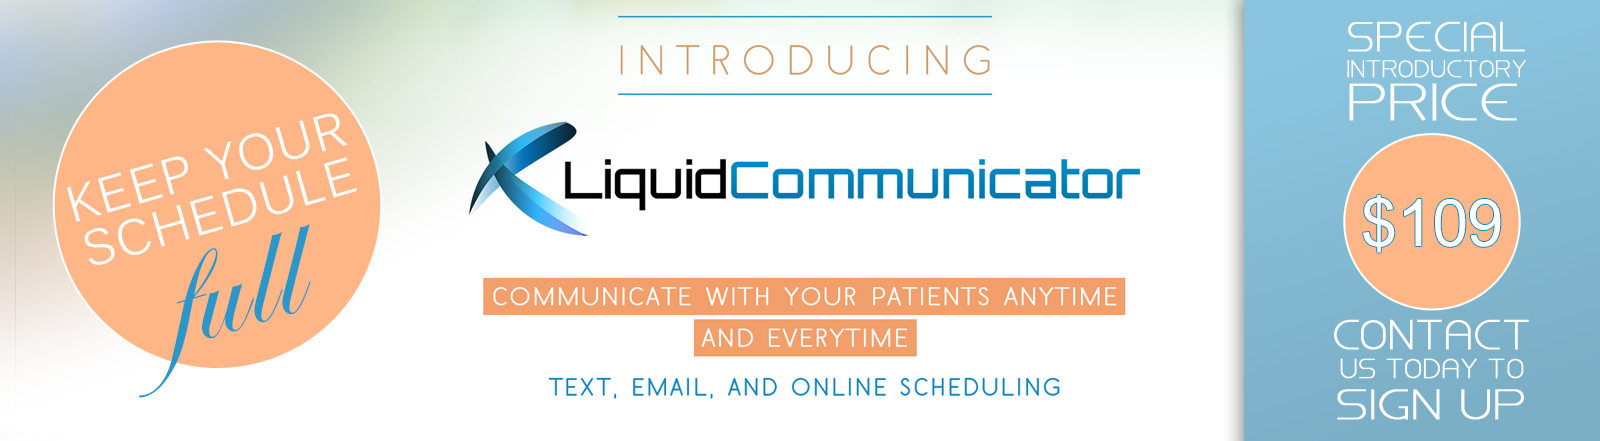 Liquid Communicator